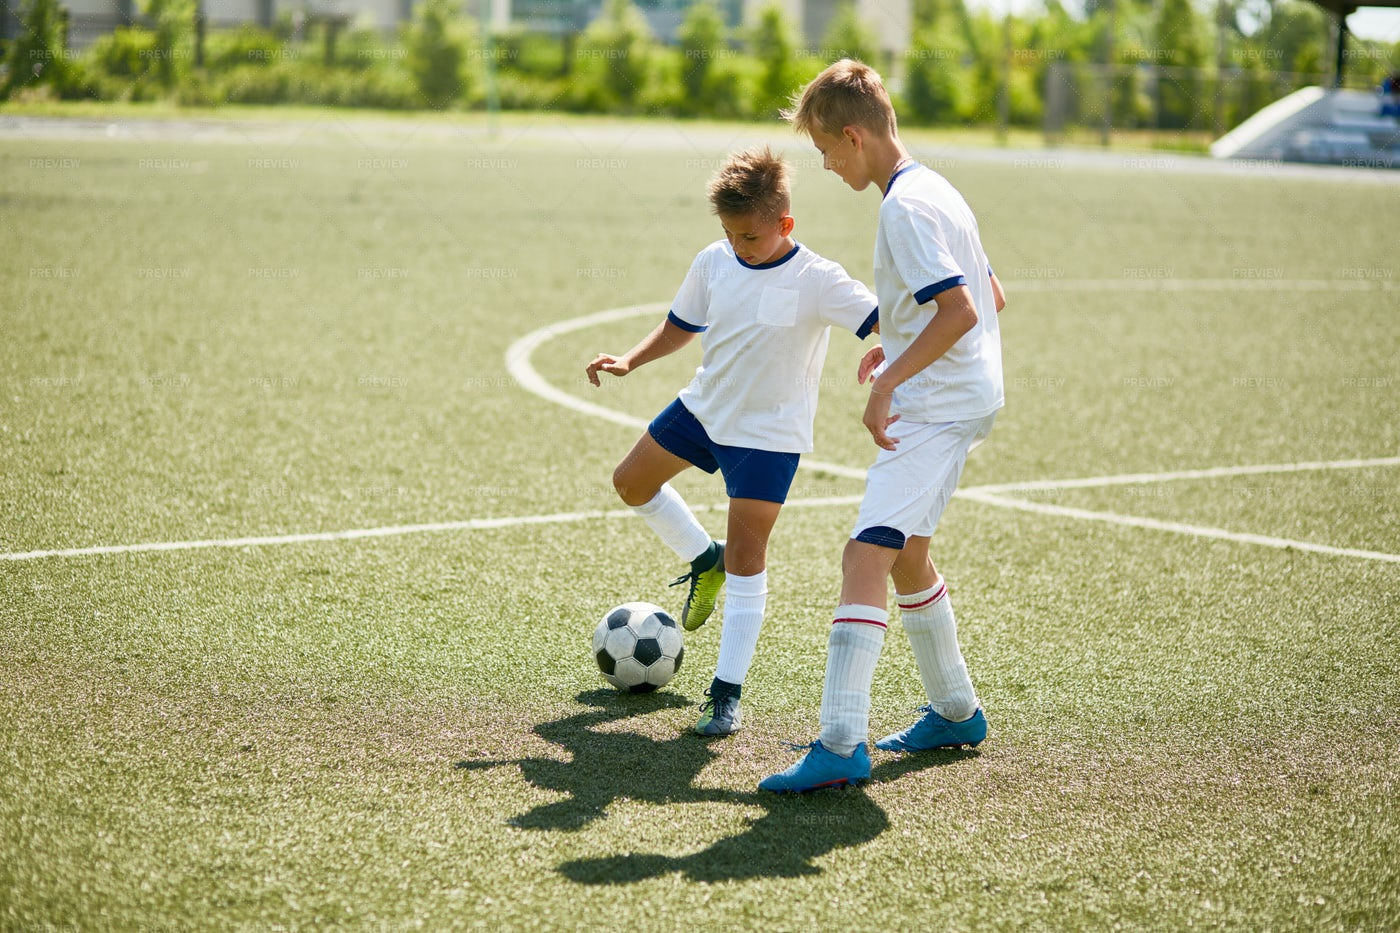 Boys Fighting For Ball In Football: Stock Photos